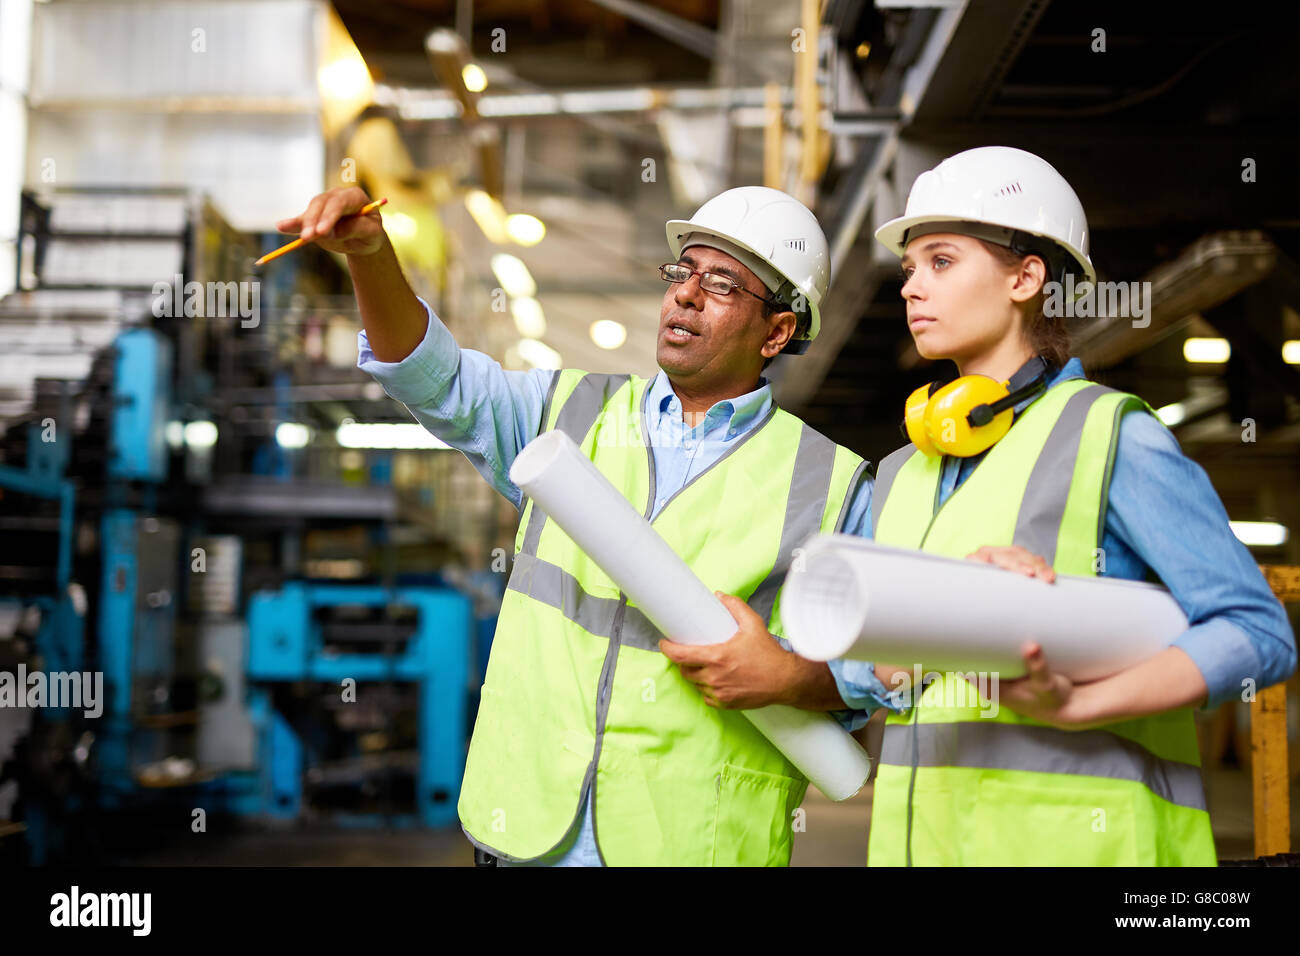 Consulting assistant - Stock Image